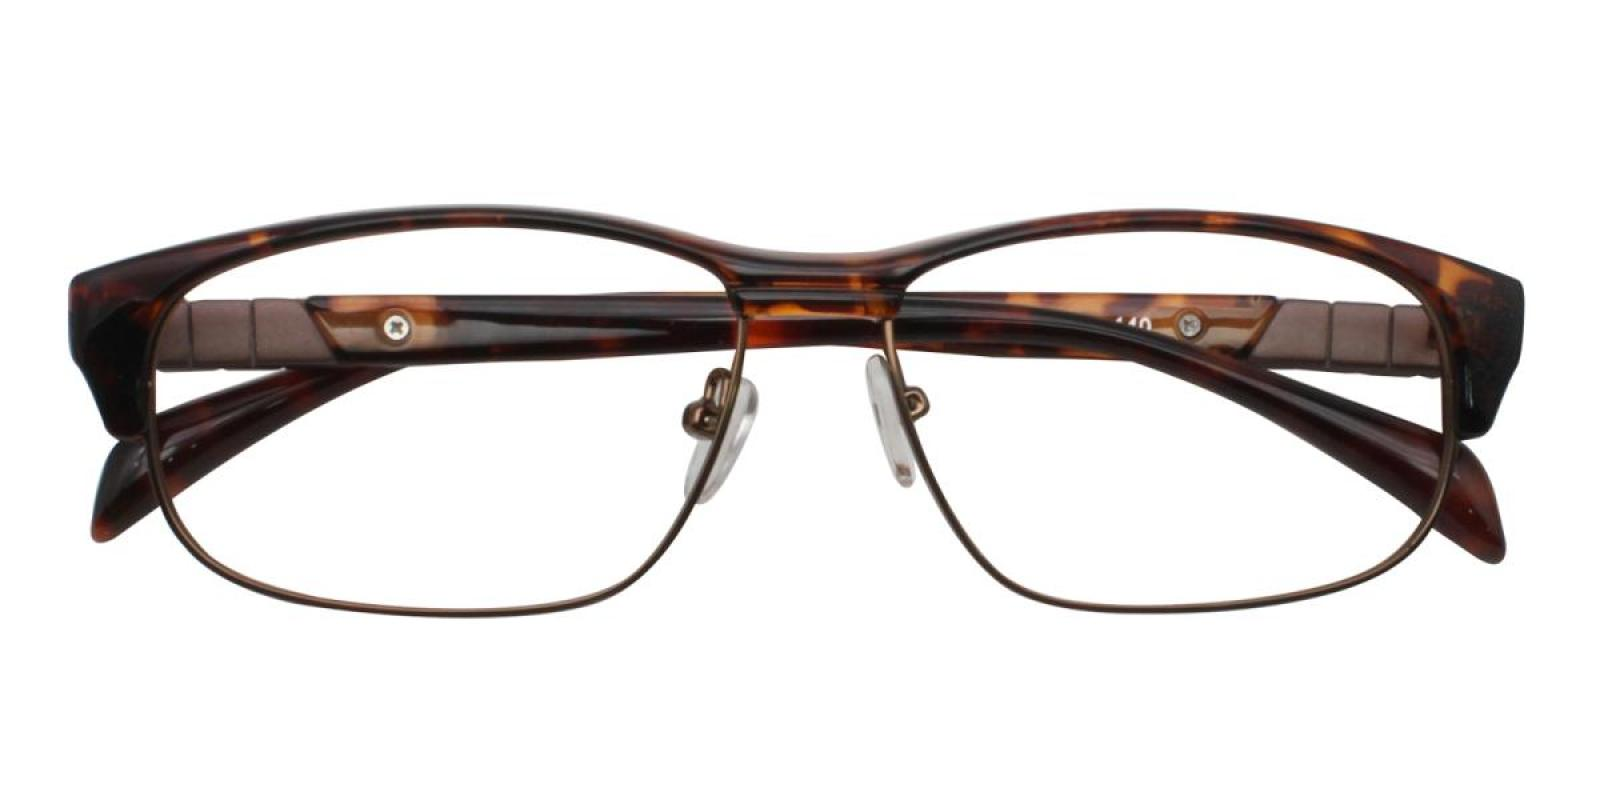 Colin-Leopard-Rectangle-Combination / Metal / TR-Eyeglasses-detail